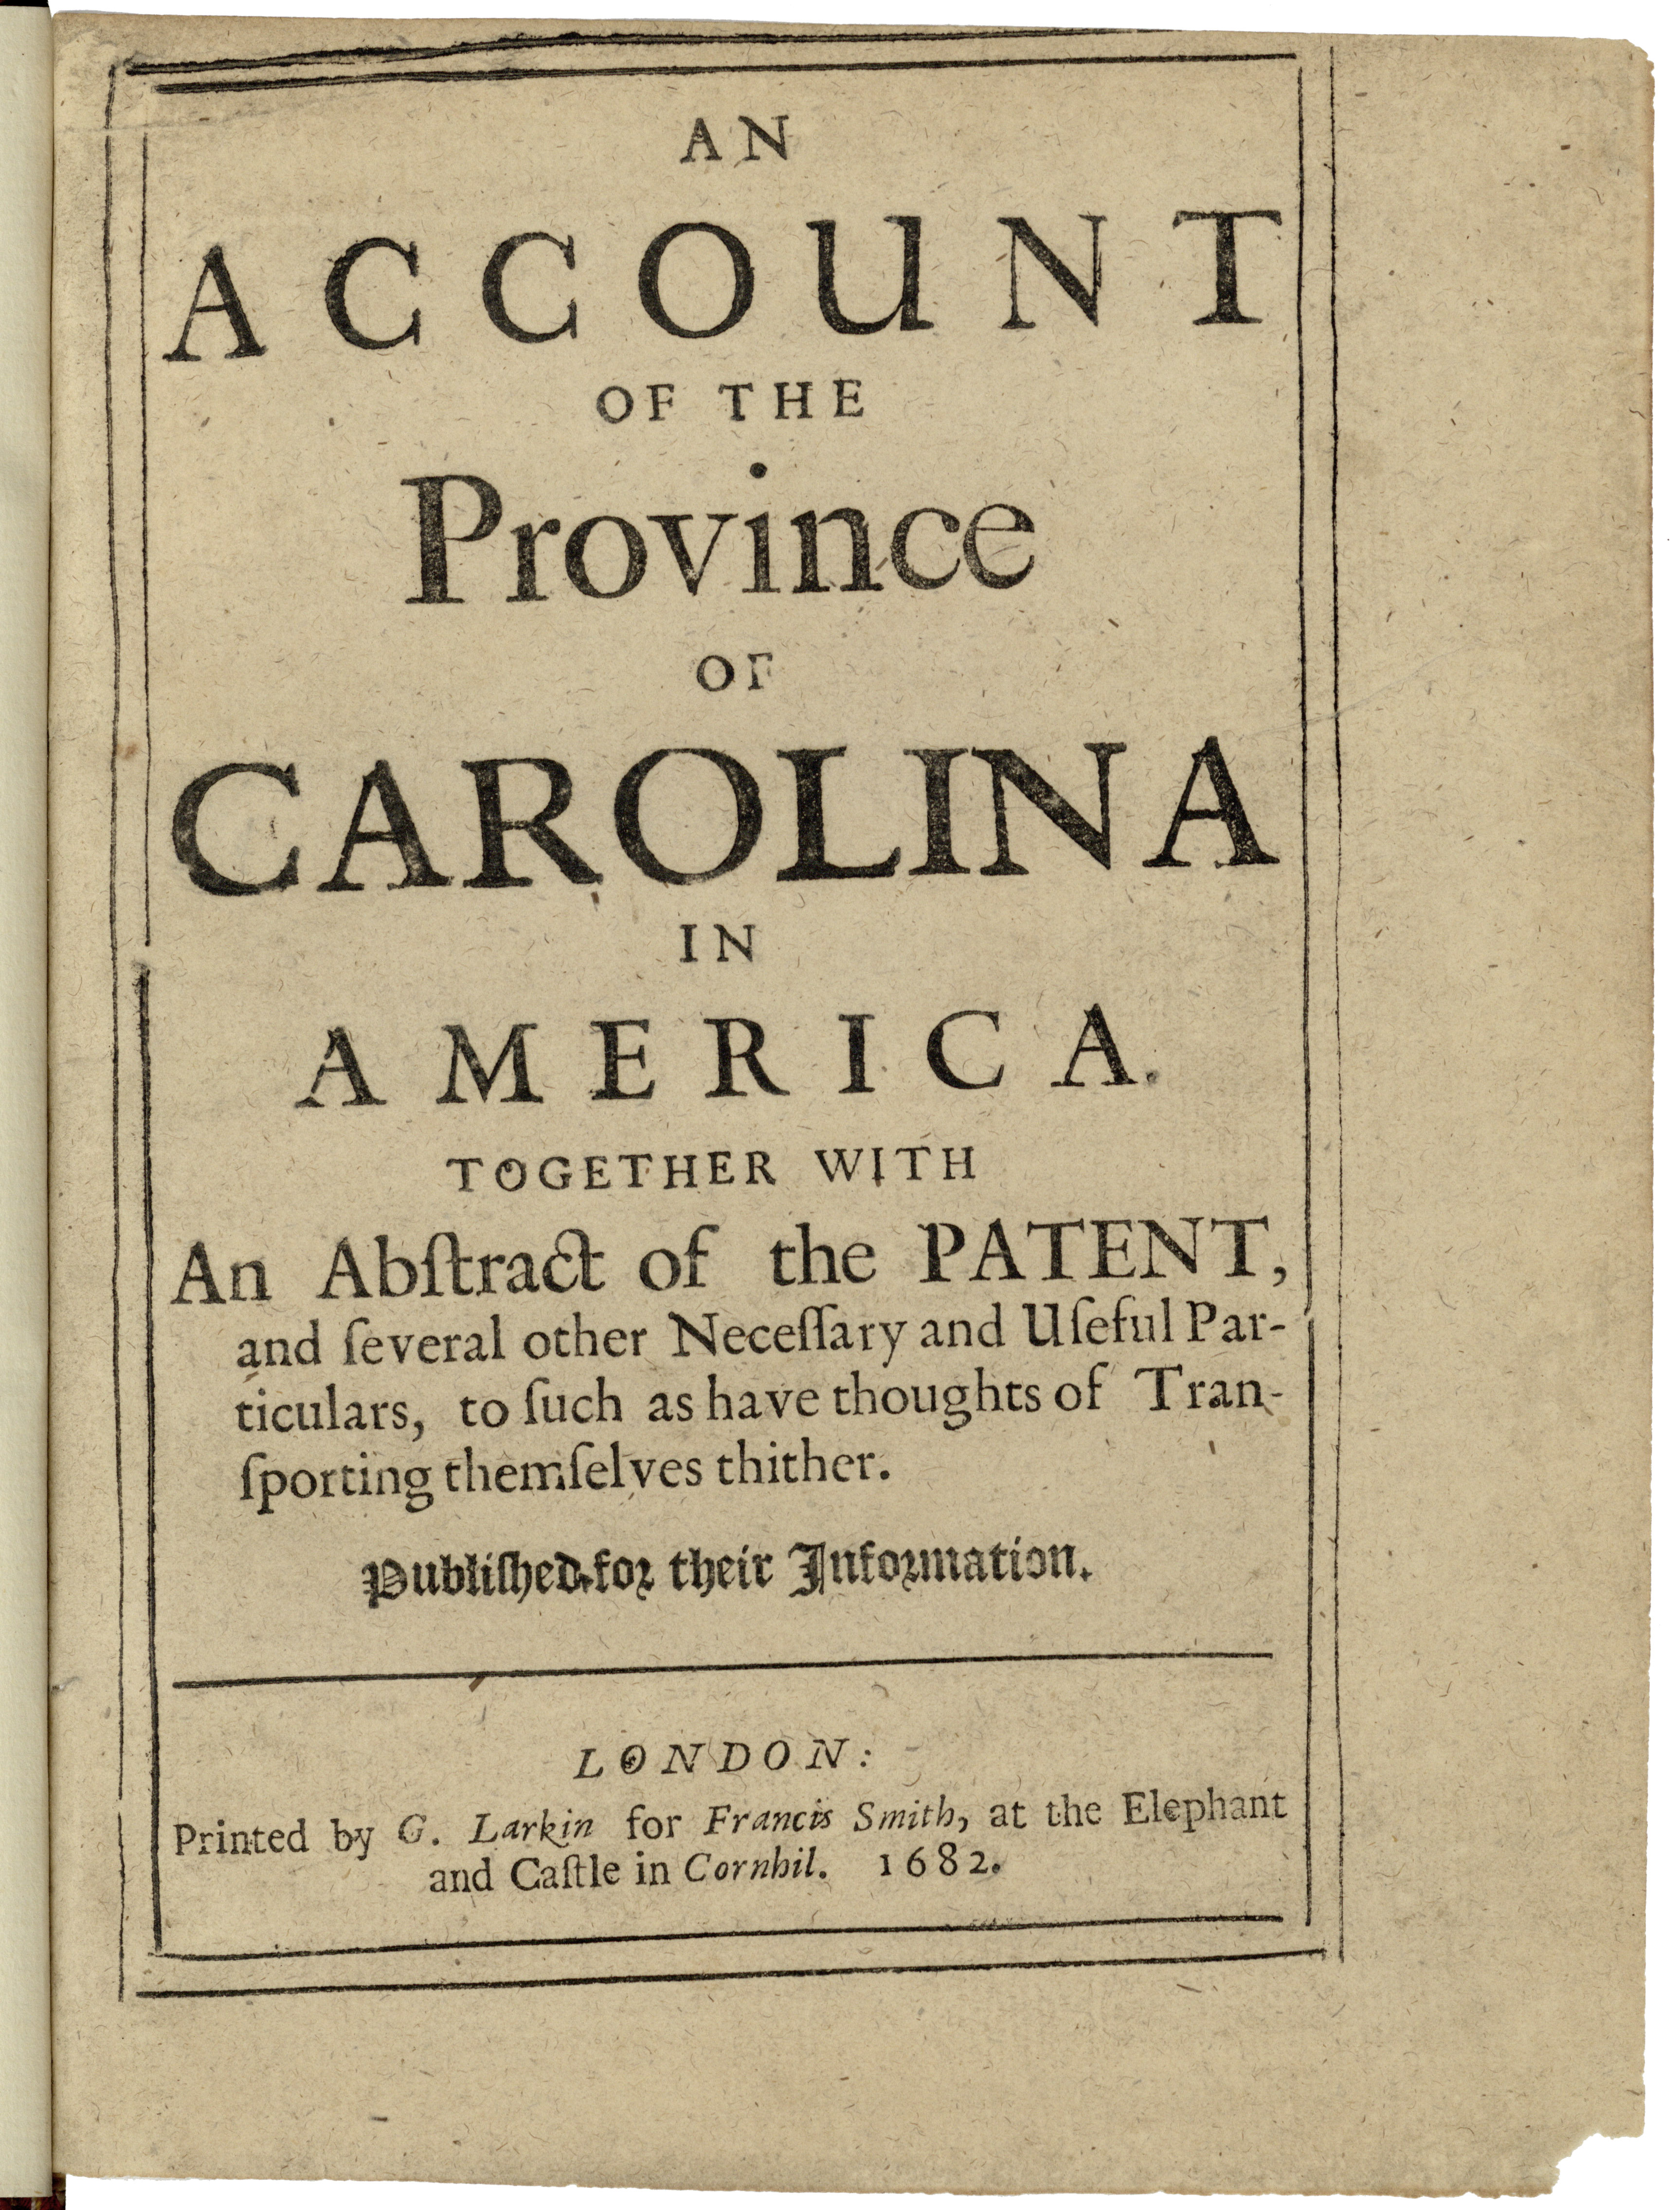 The title page from Wilson's An Account of the Province of Carolina (ROB139)